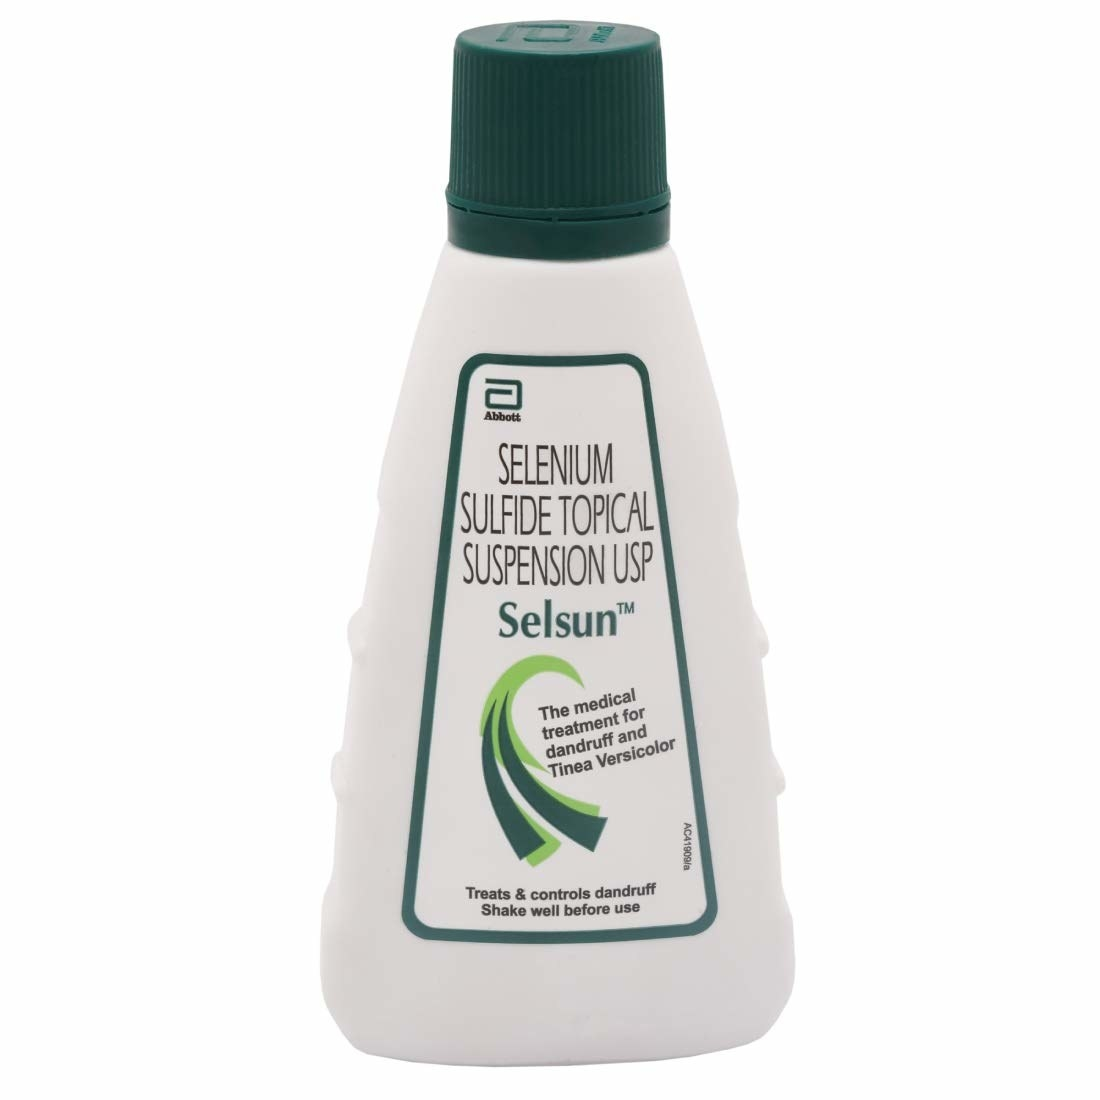 Bottle of the anti-dandruff shampoo